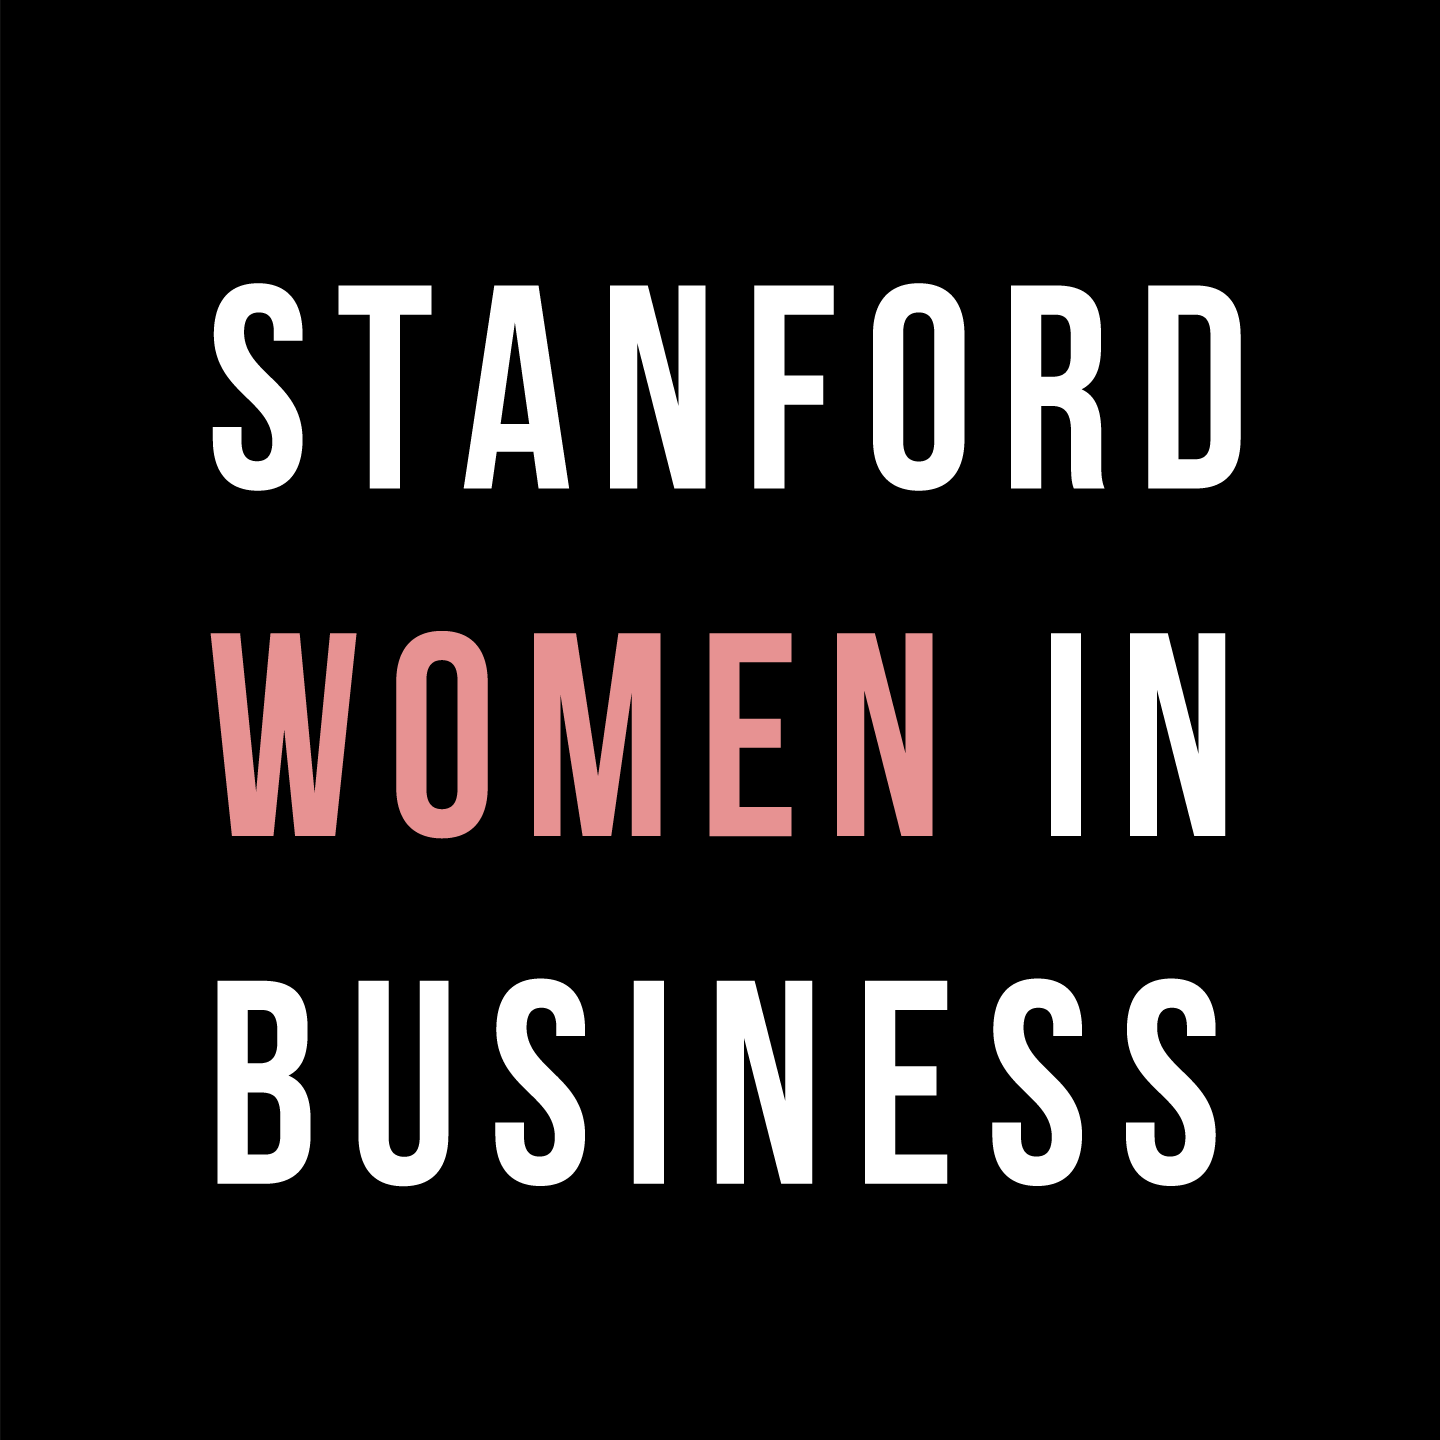 Stanford Women In Business